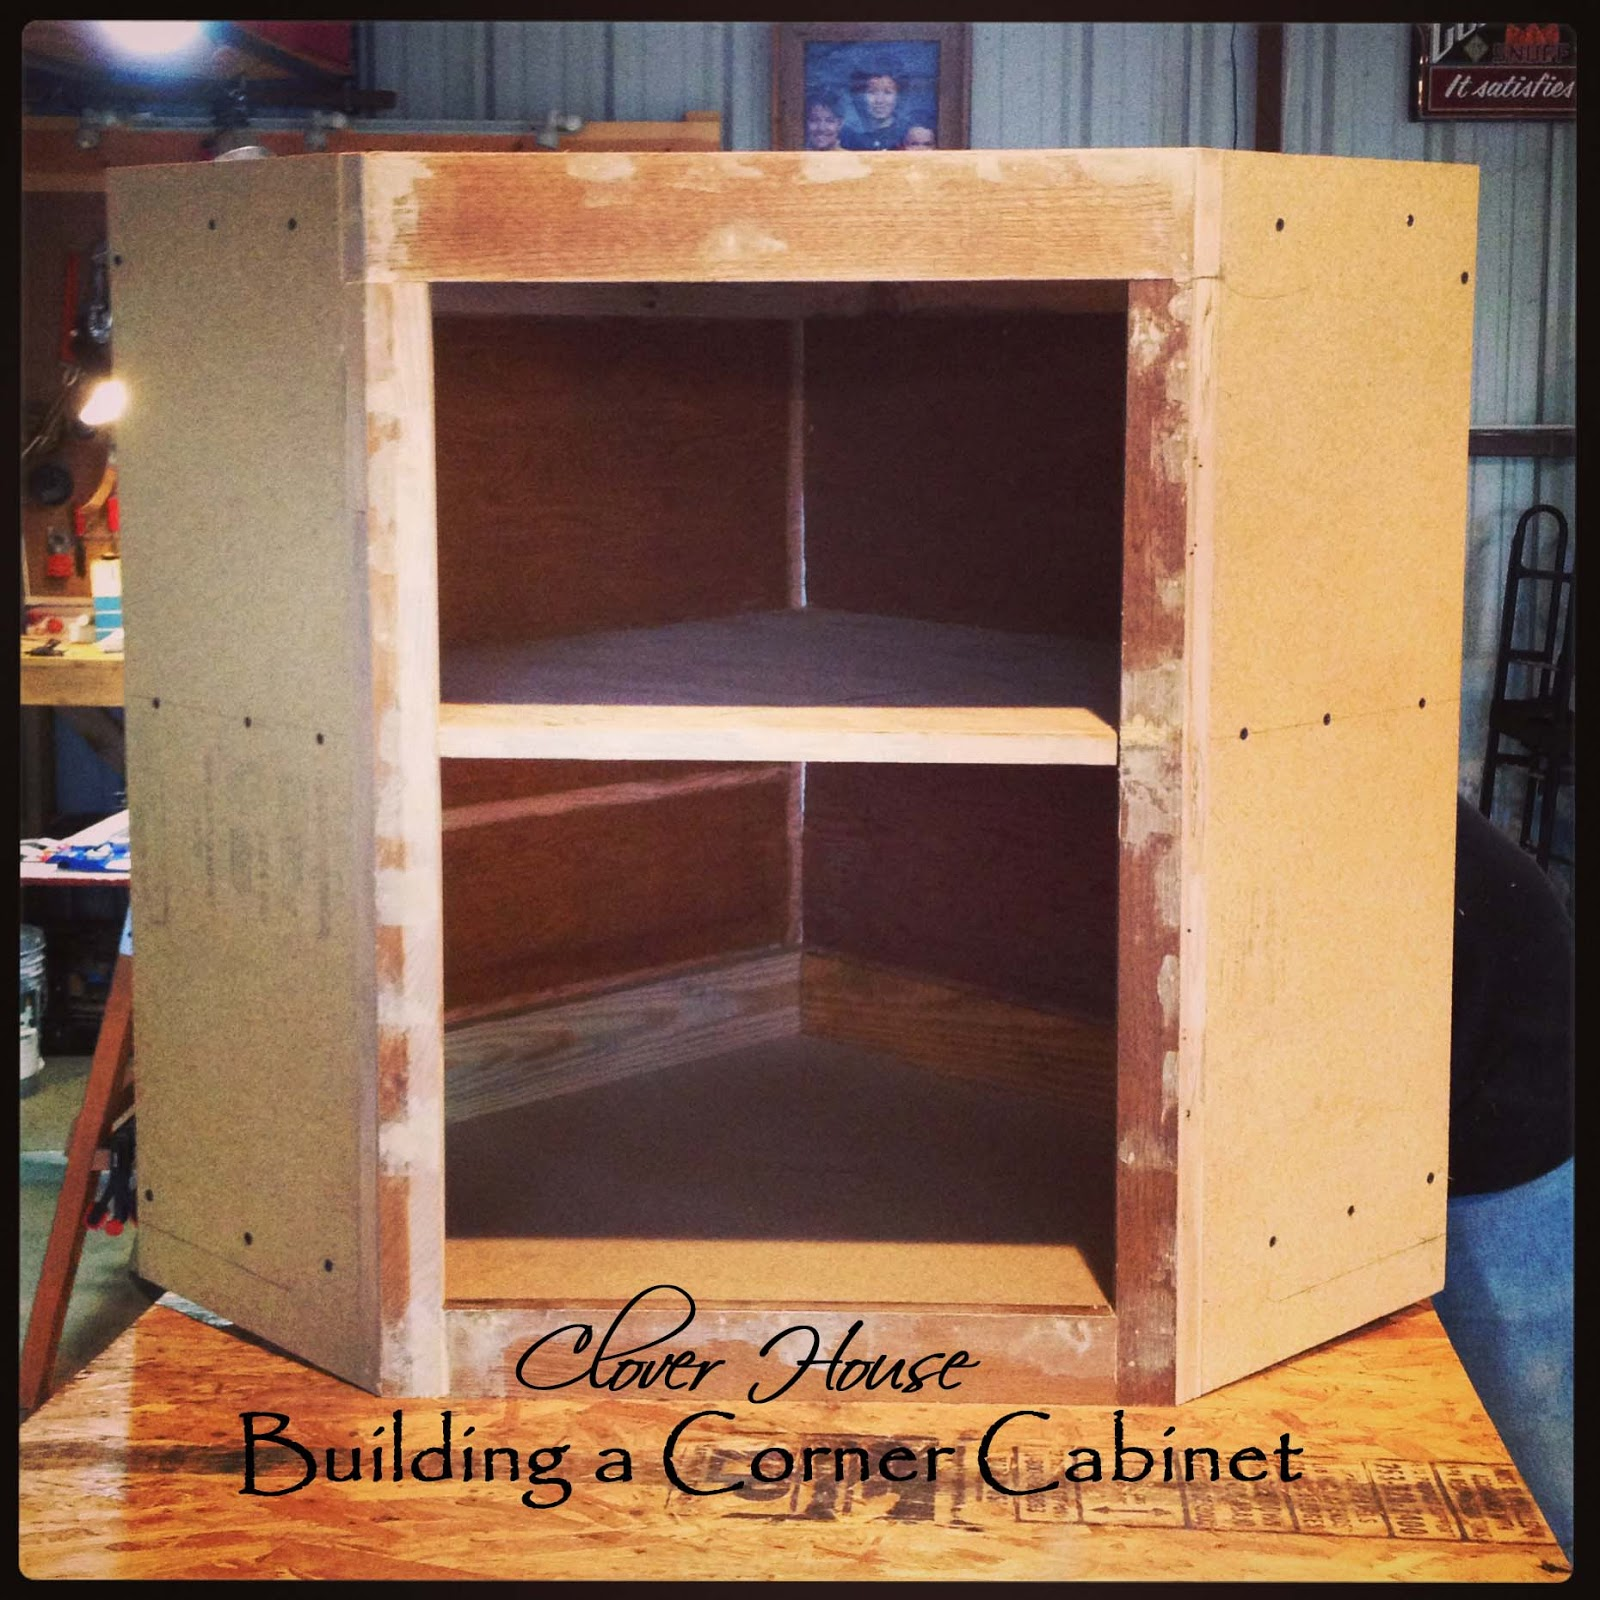 Building A Kitchen Cabinet Clover House Building A Corner Cabinet